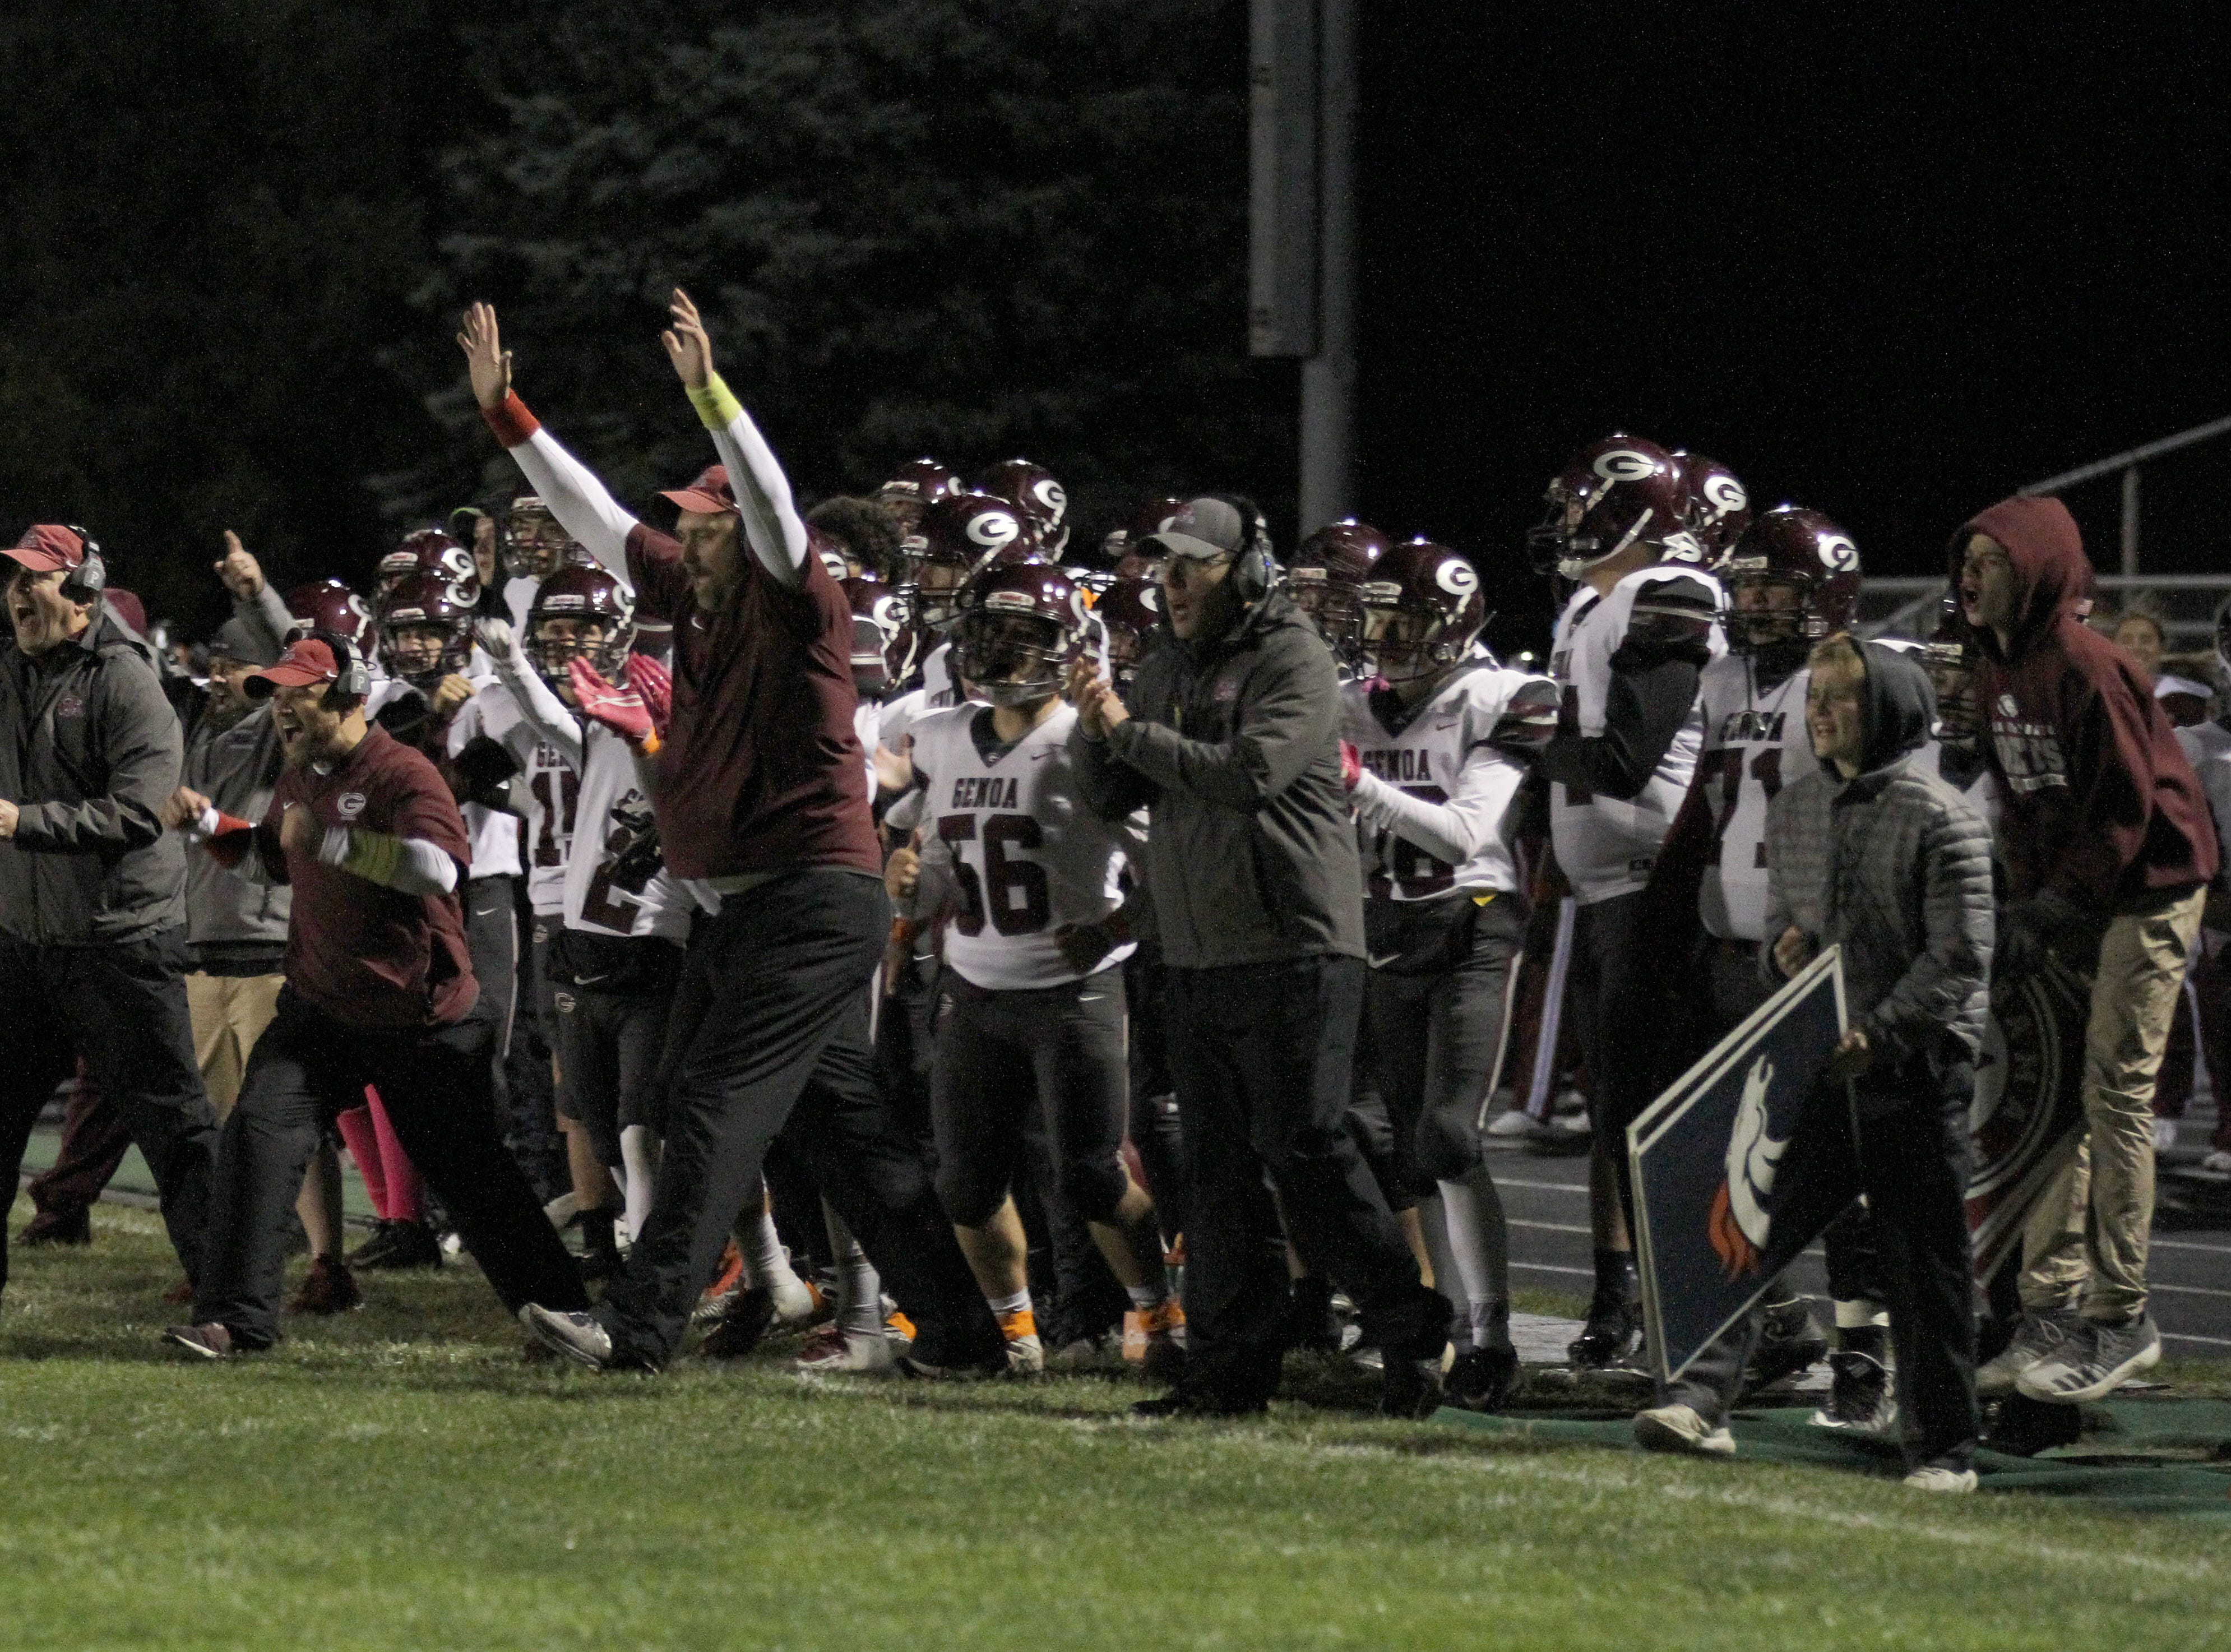 Genoa's sideline erupts after a successful goal line stand against Eastwood, as the first half expired.